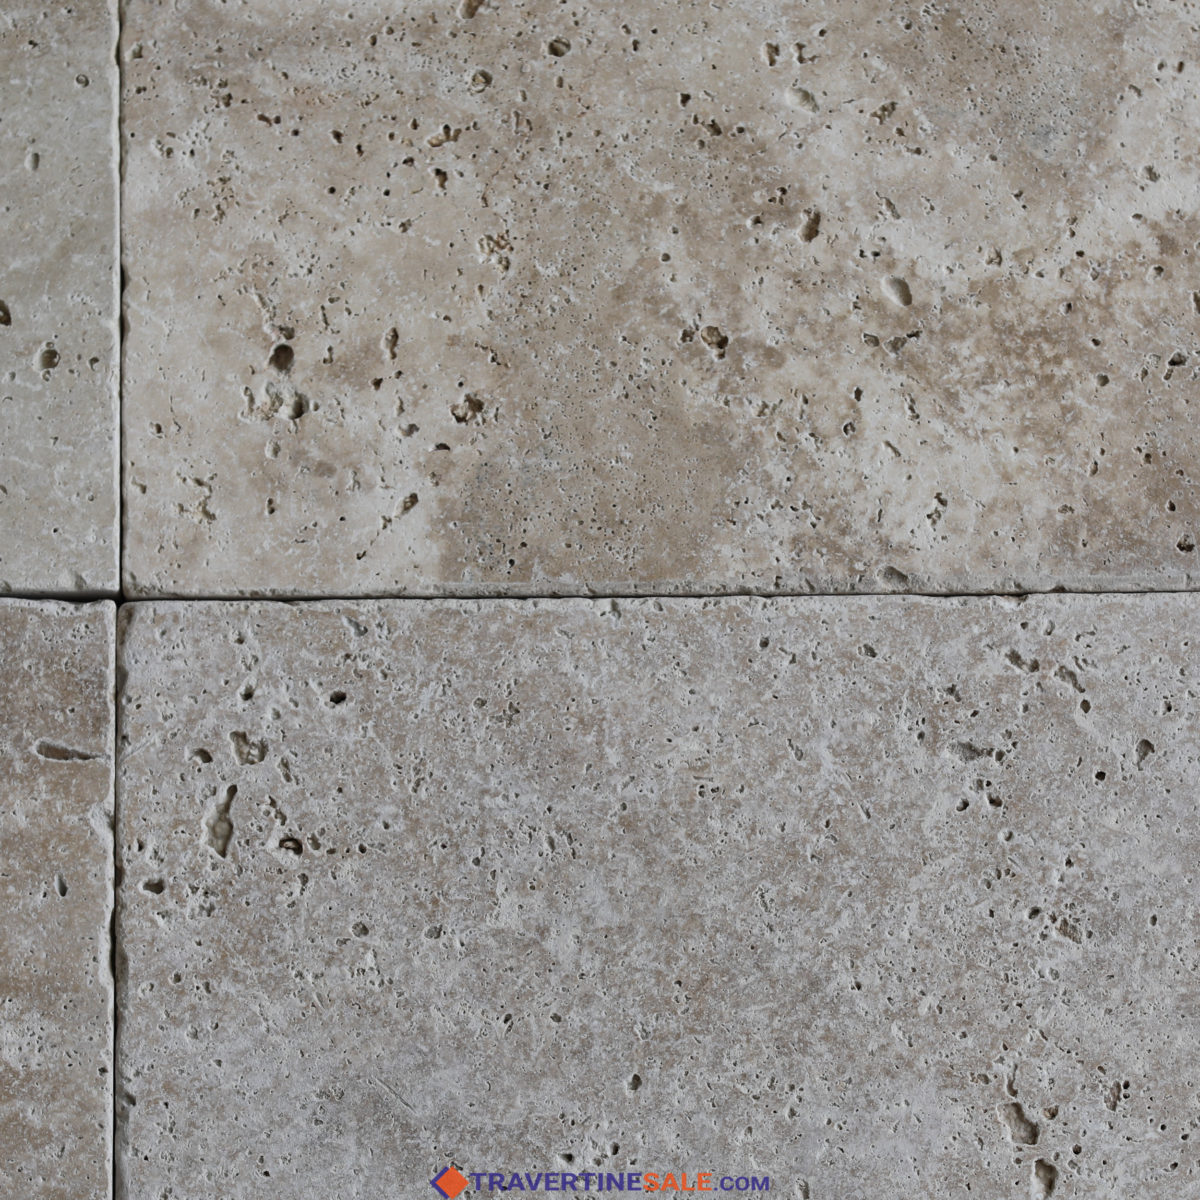 tumbled ivory travertine tiles surface with ivory dry background